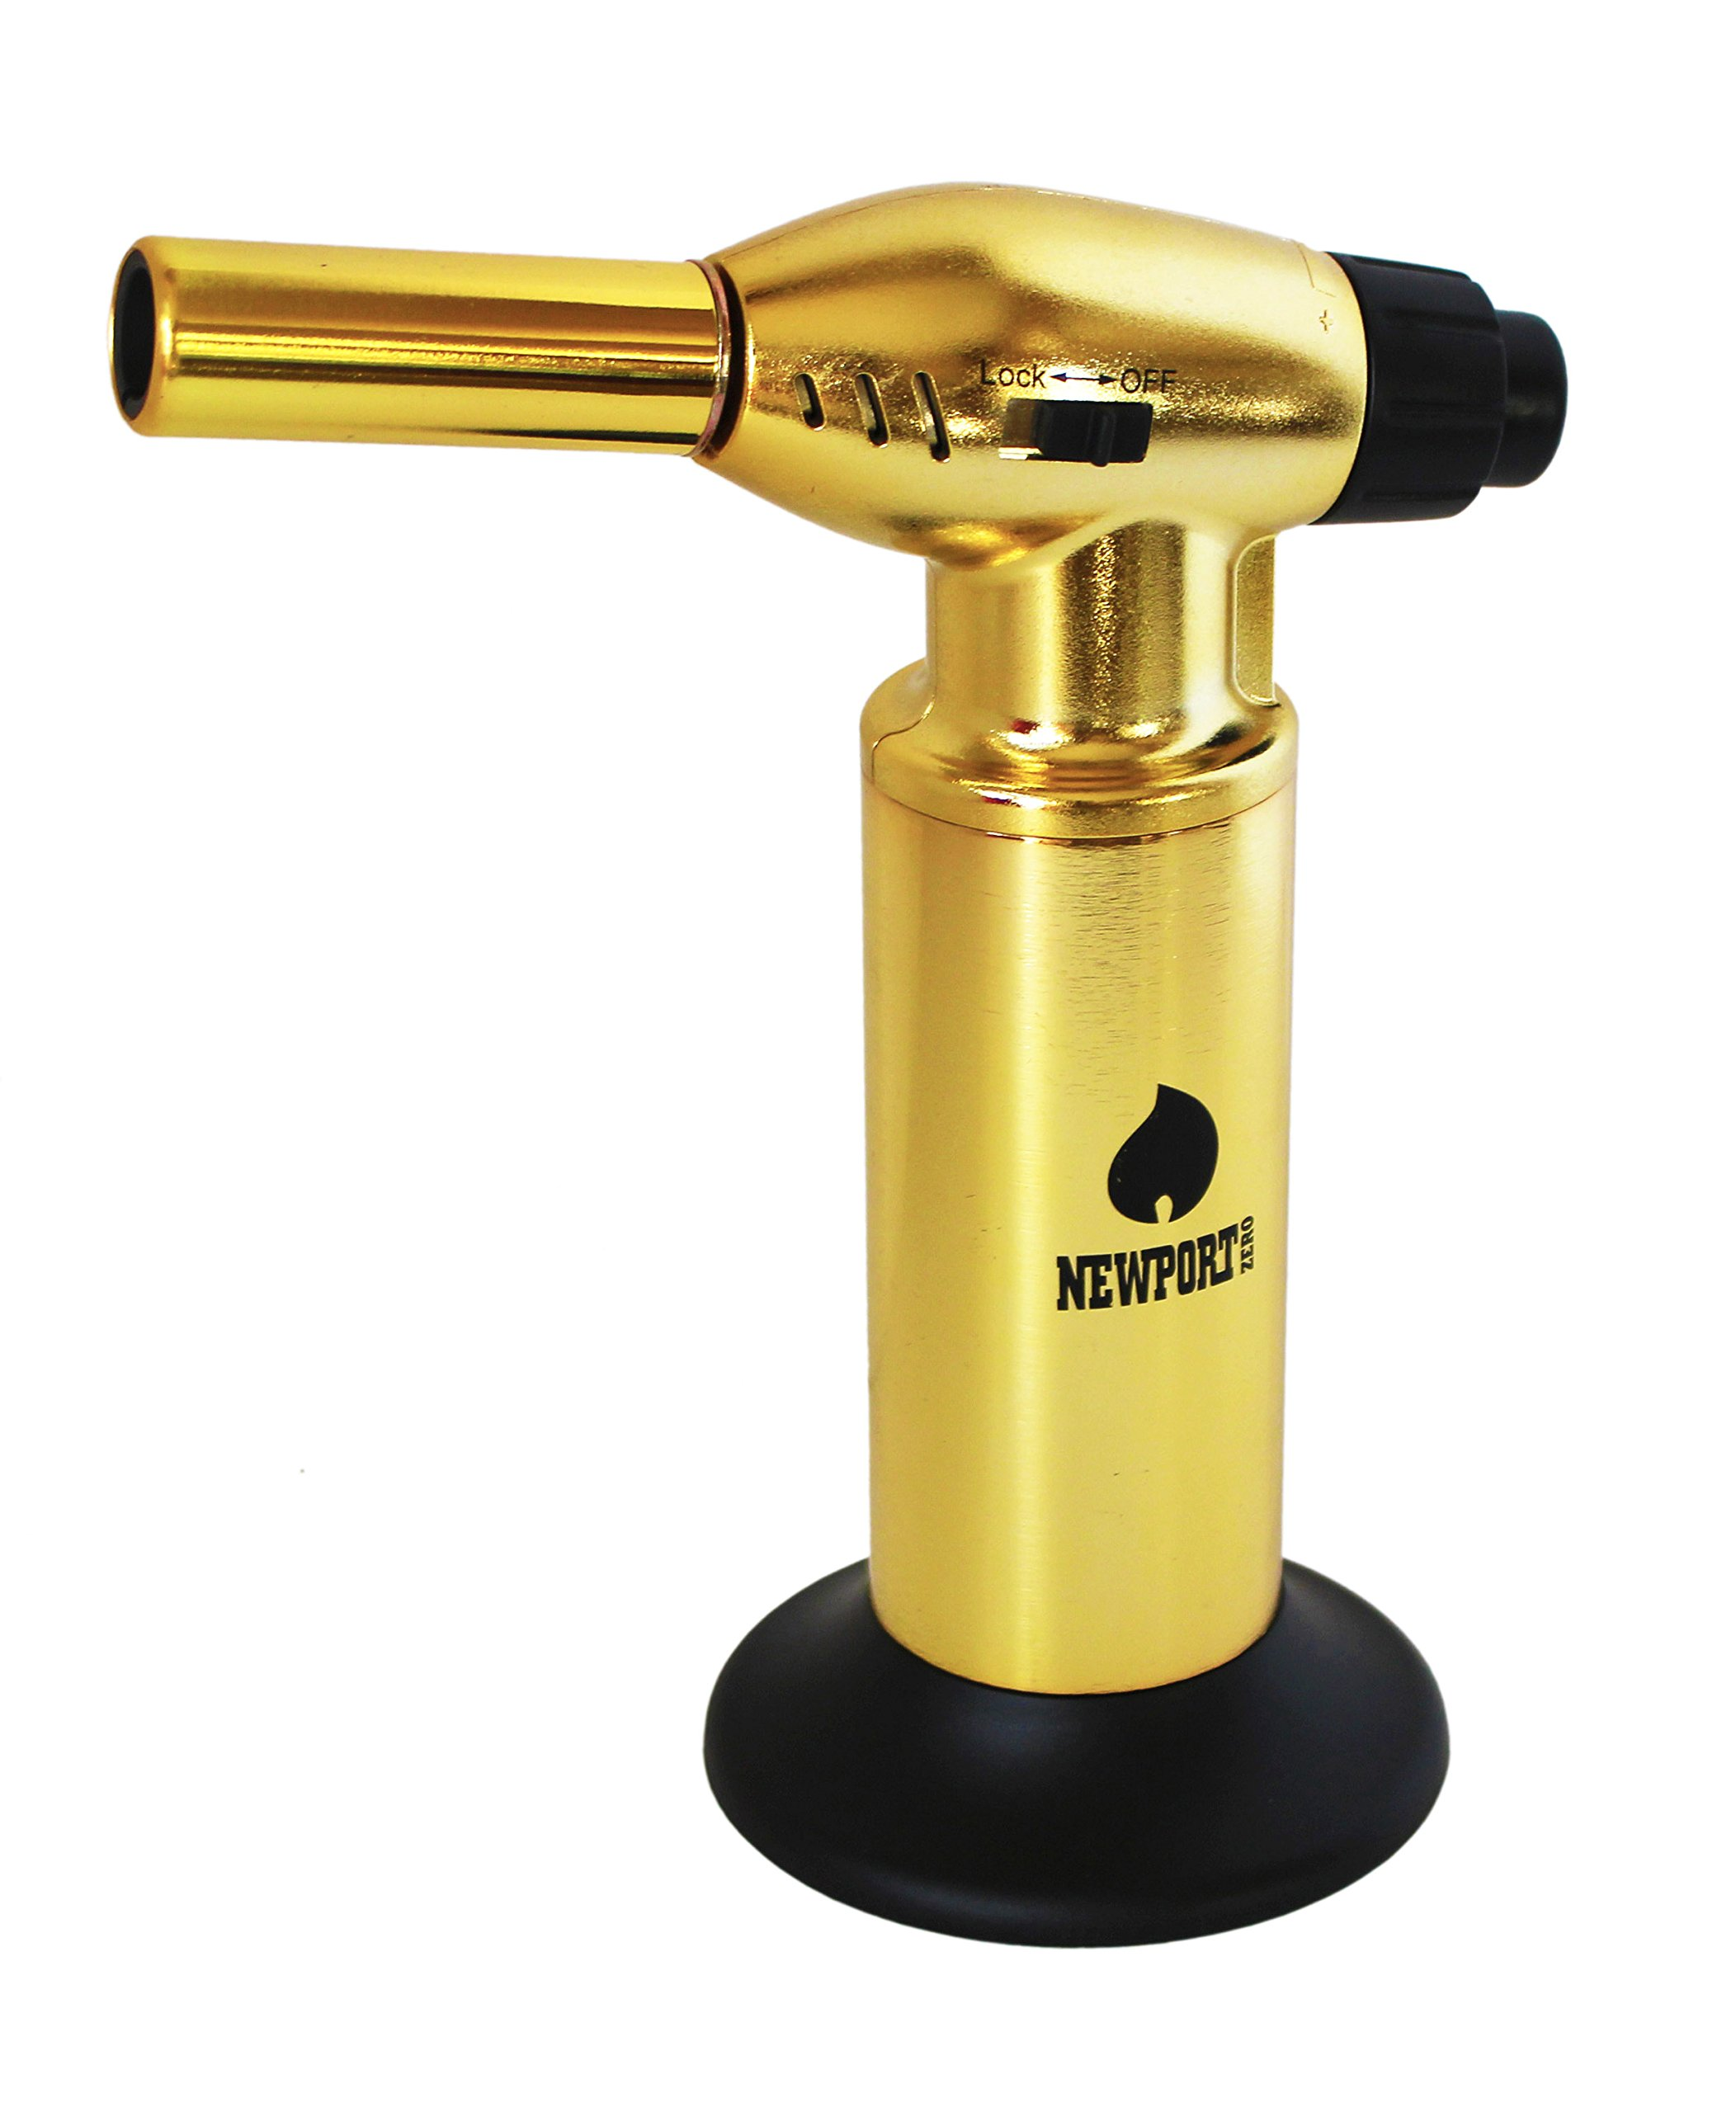 Creme Brulee Culinary Kitchen Torch - Cooking Torch & Multifunction Butane Torch Lighter - Intense Adjustable Jet Flame (Up to 2400 F) - Includes Safety Lock, Piezo Ignition, and Quick Refill System - 10'' Gold by Newport (Image #10)